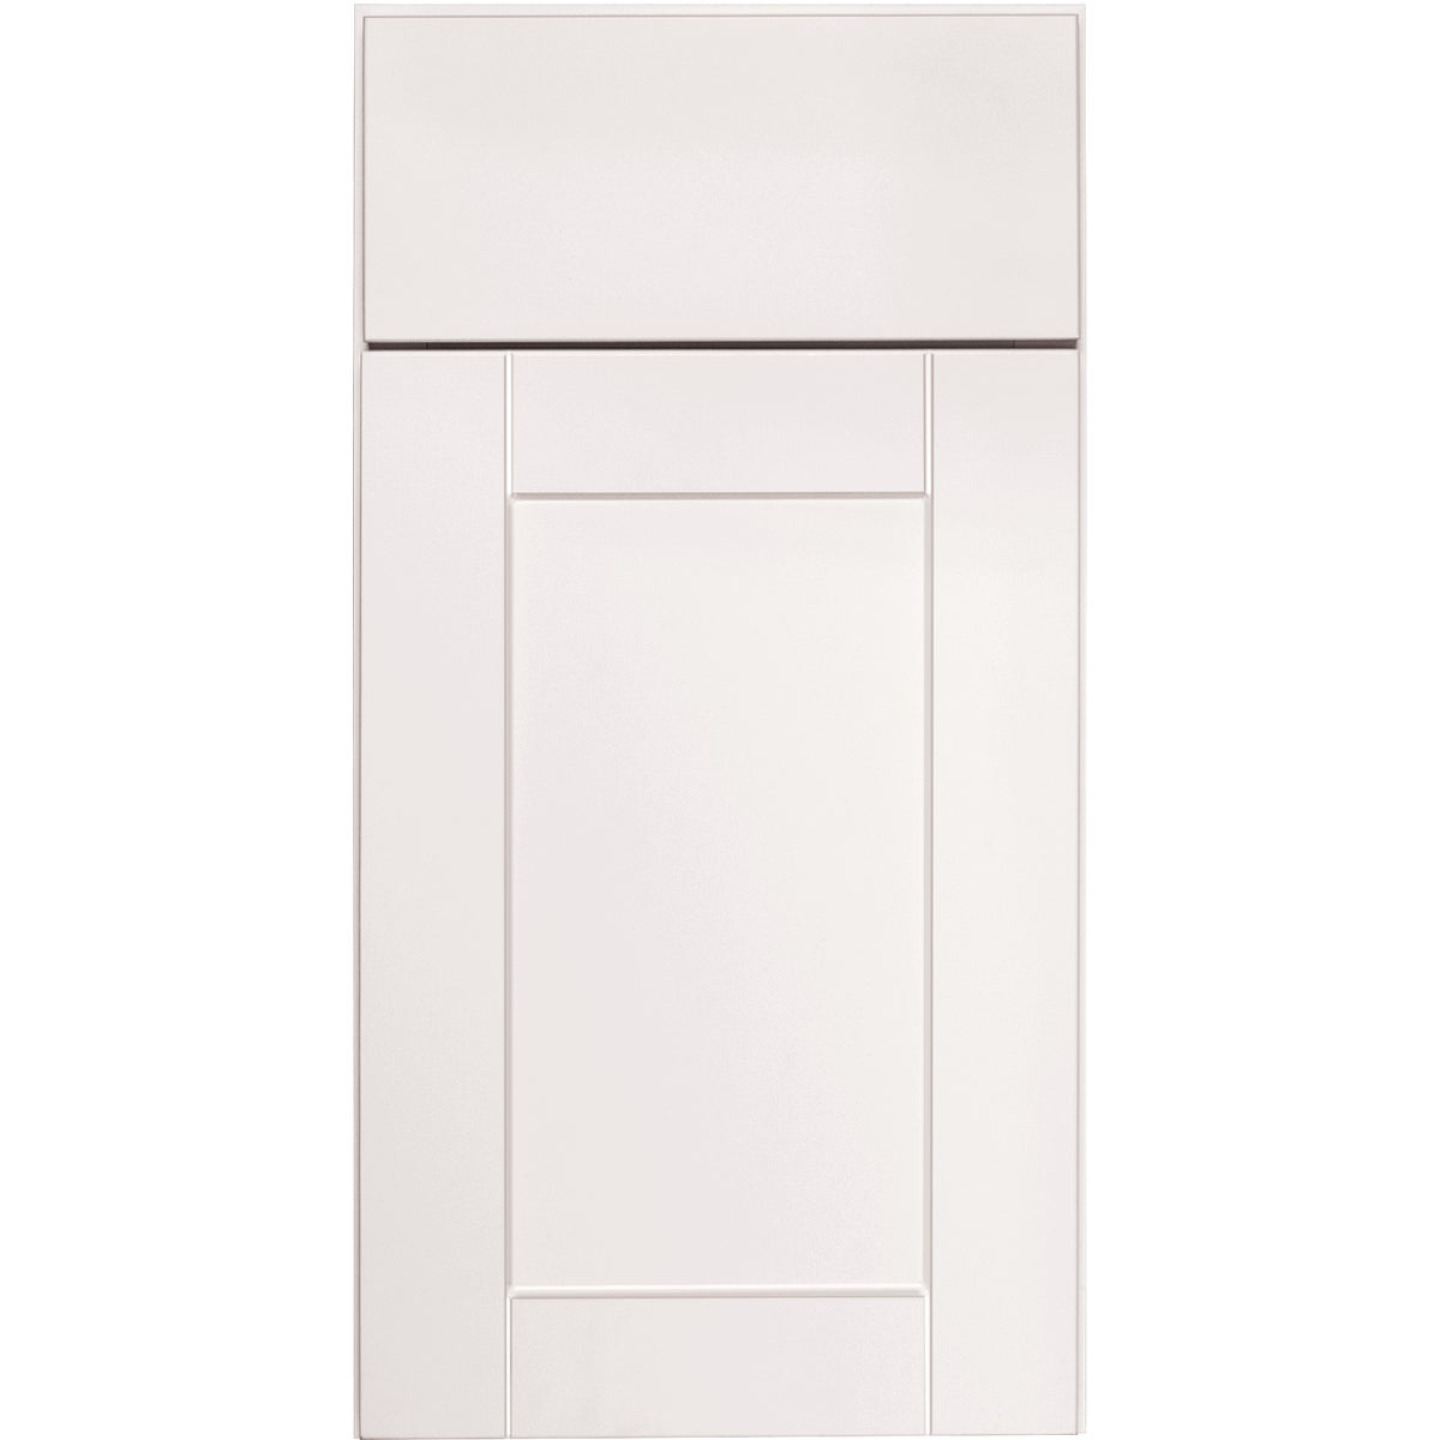 Continental Cabinets Andover Shaker 18 In. W x 34 In. H x 24 In. D White Thermofoil Base Kitchen Cabinet Image 3